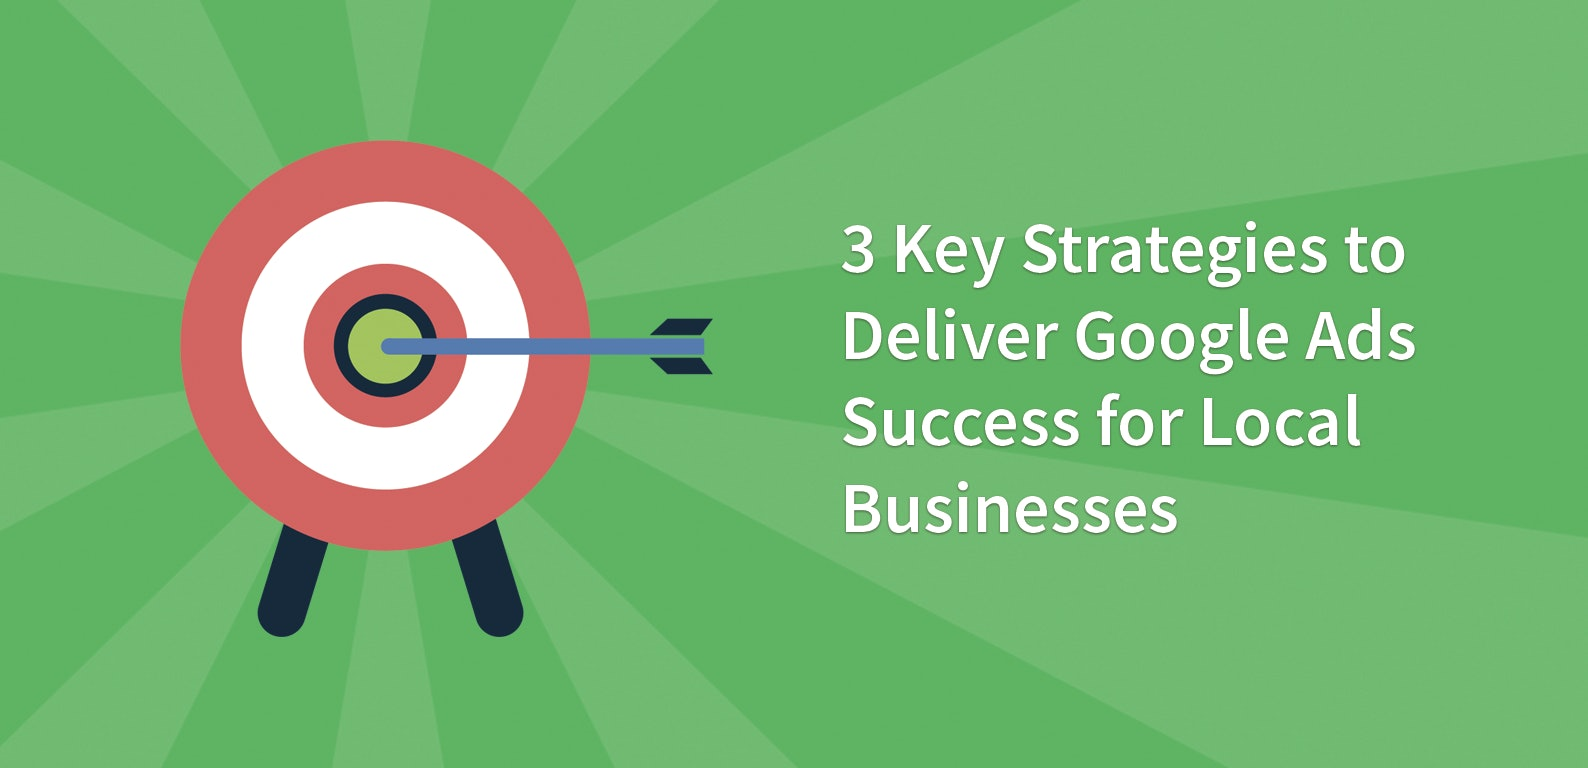 3 Key Strategies to Deliver Google Ads Success for Local Businesses